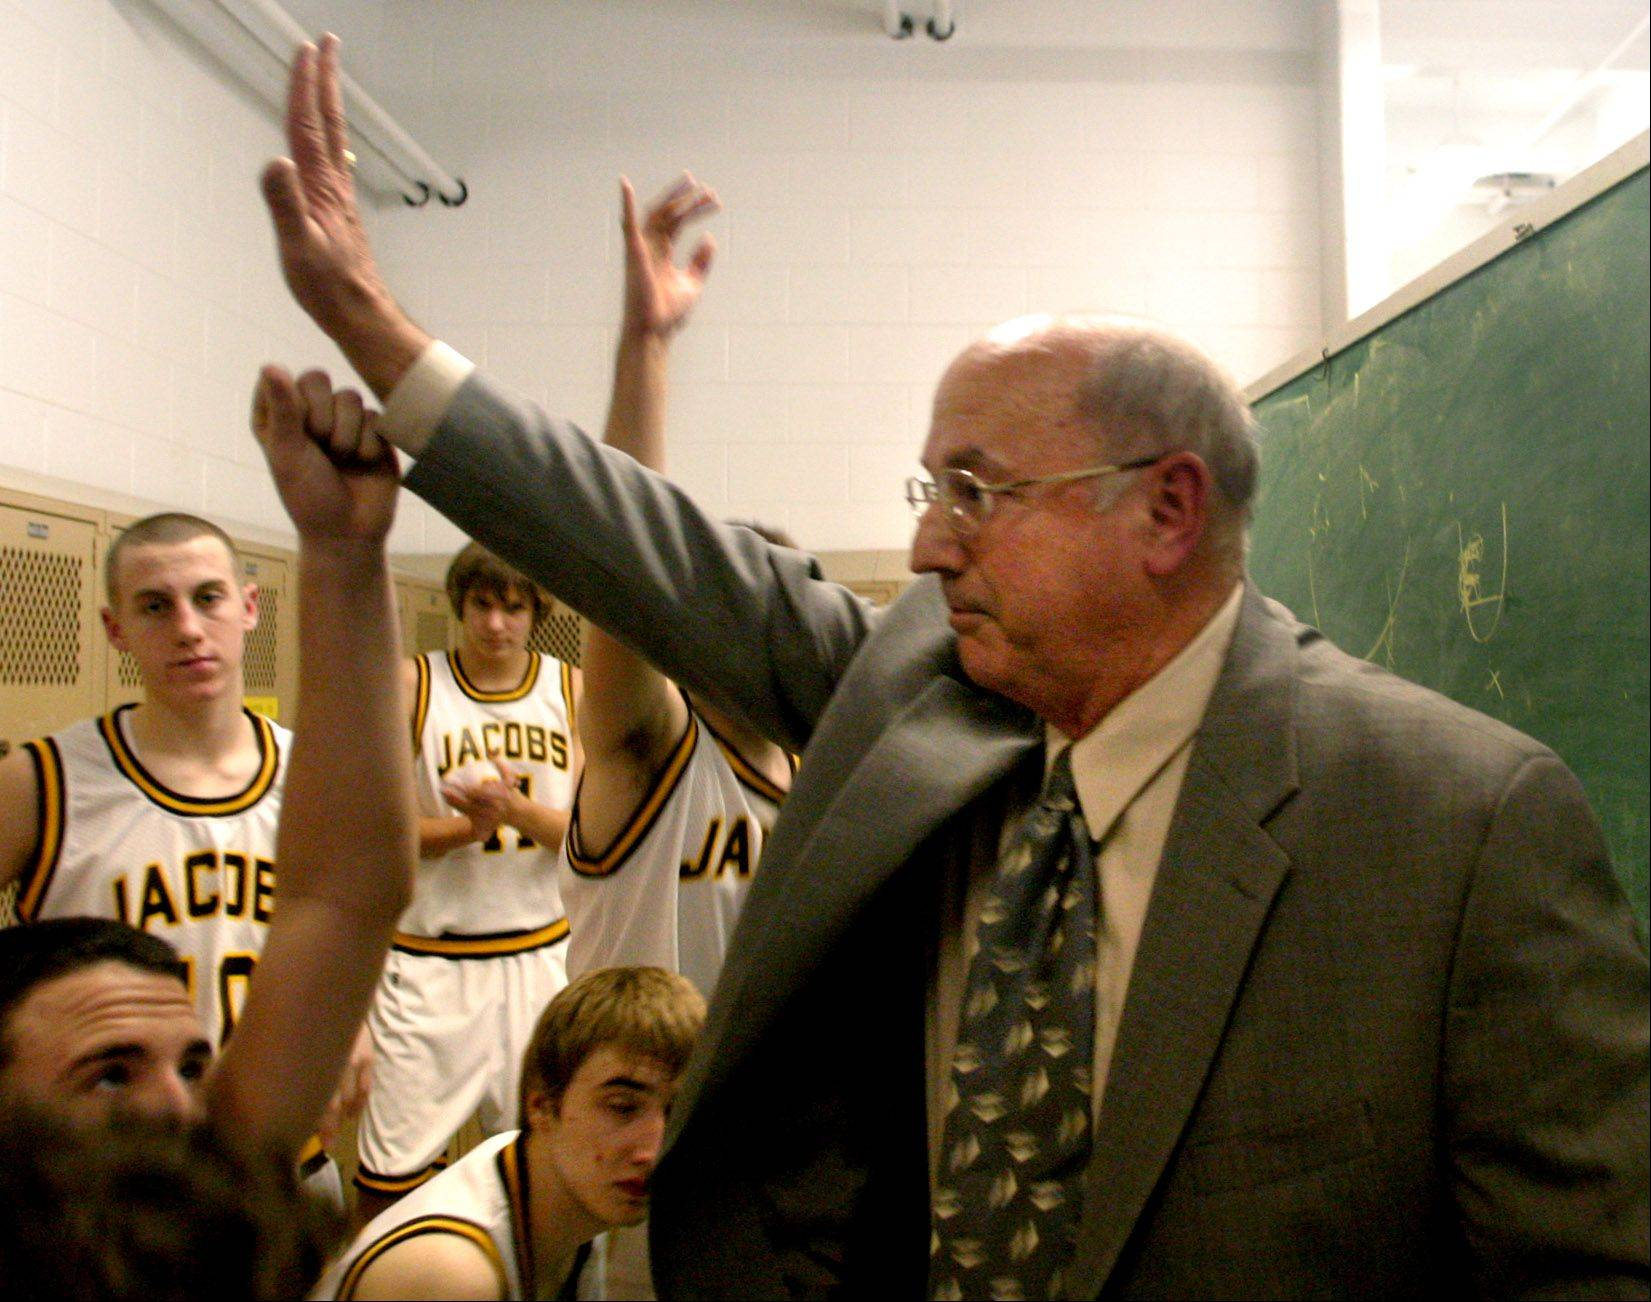 Jacobs coach Jim Hinkle celebrates his 300th win in the locker room with his team in December, 2003.